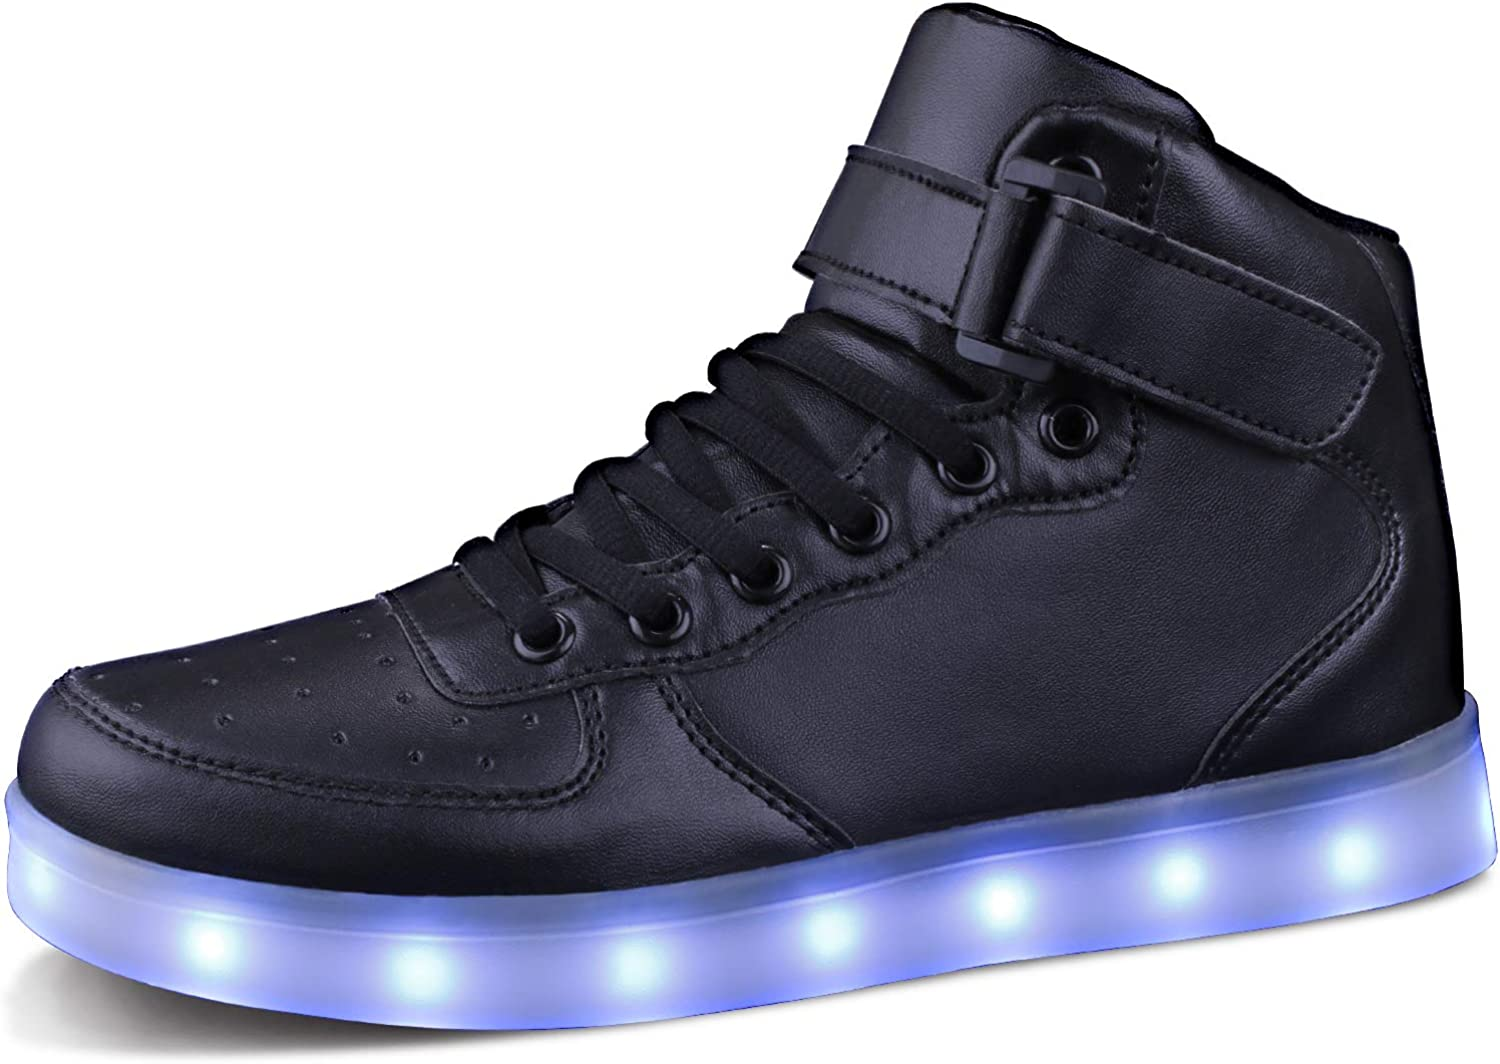 MILEADER LED Shoes High Top Manufacturer regenerated product Sneakers USB Charging Sneak Colors Easy-to-use 7